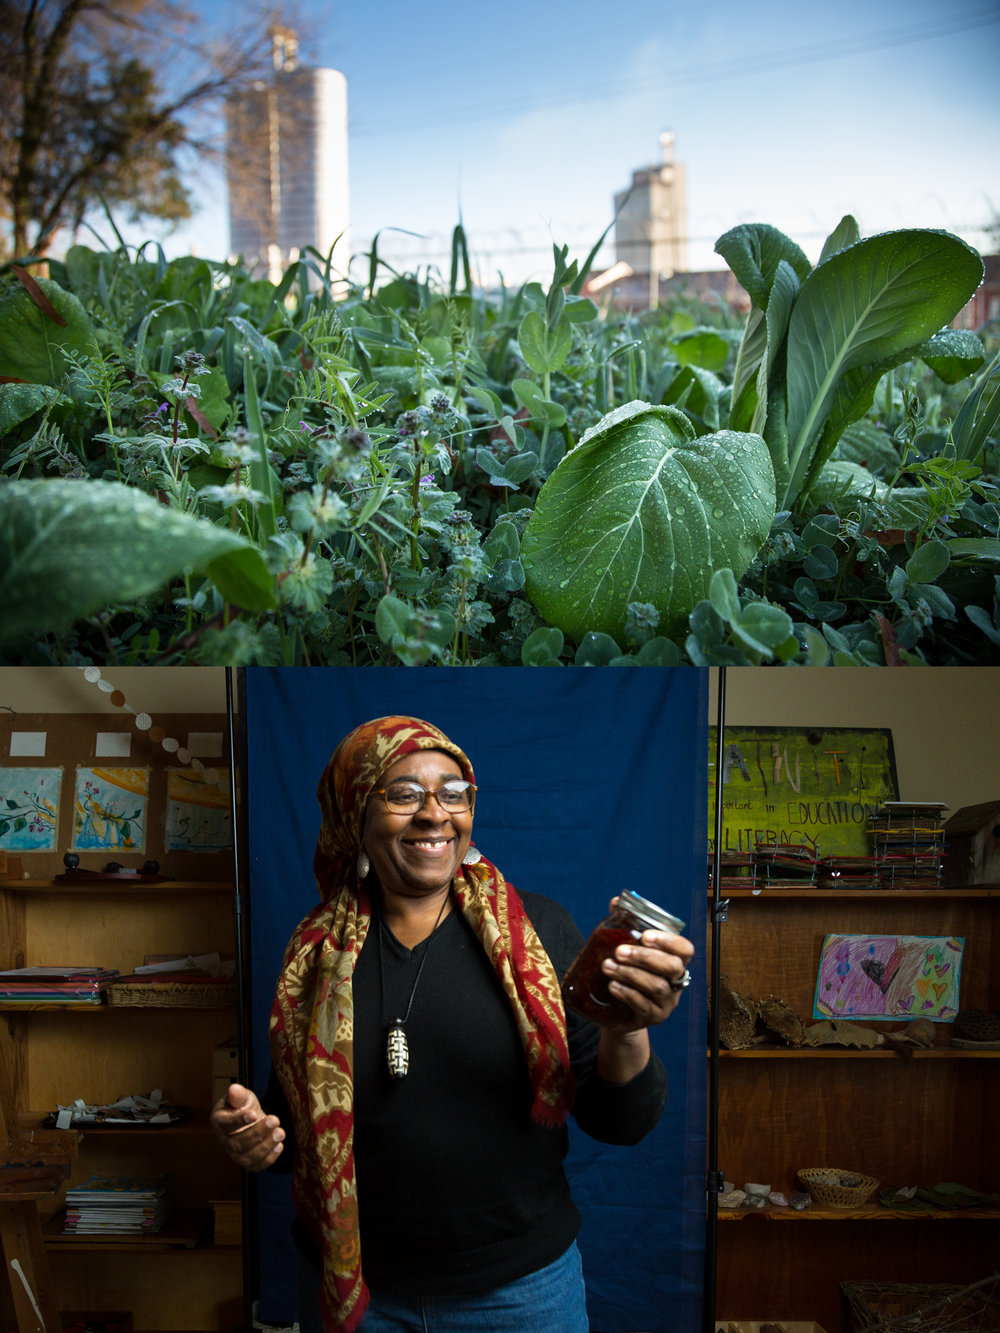 Kareemah Abdusamad poses for a portrait at SEEDS Community Garden below. Natural treasures and children's drawings cover the shelves behind her. Above, dew forms on plants in the garden at sunrise.